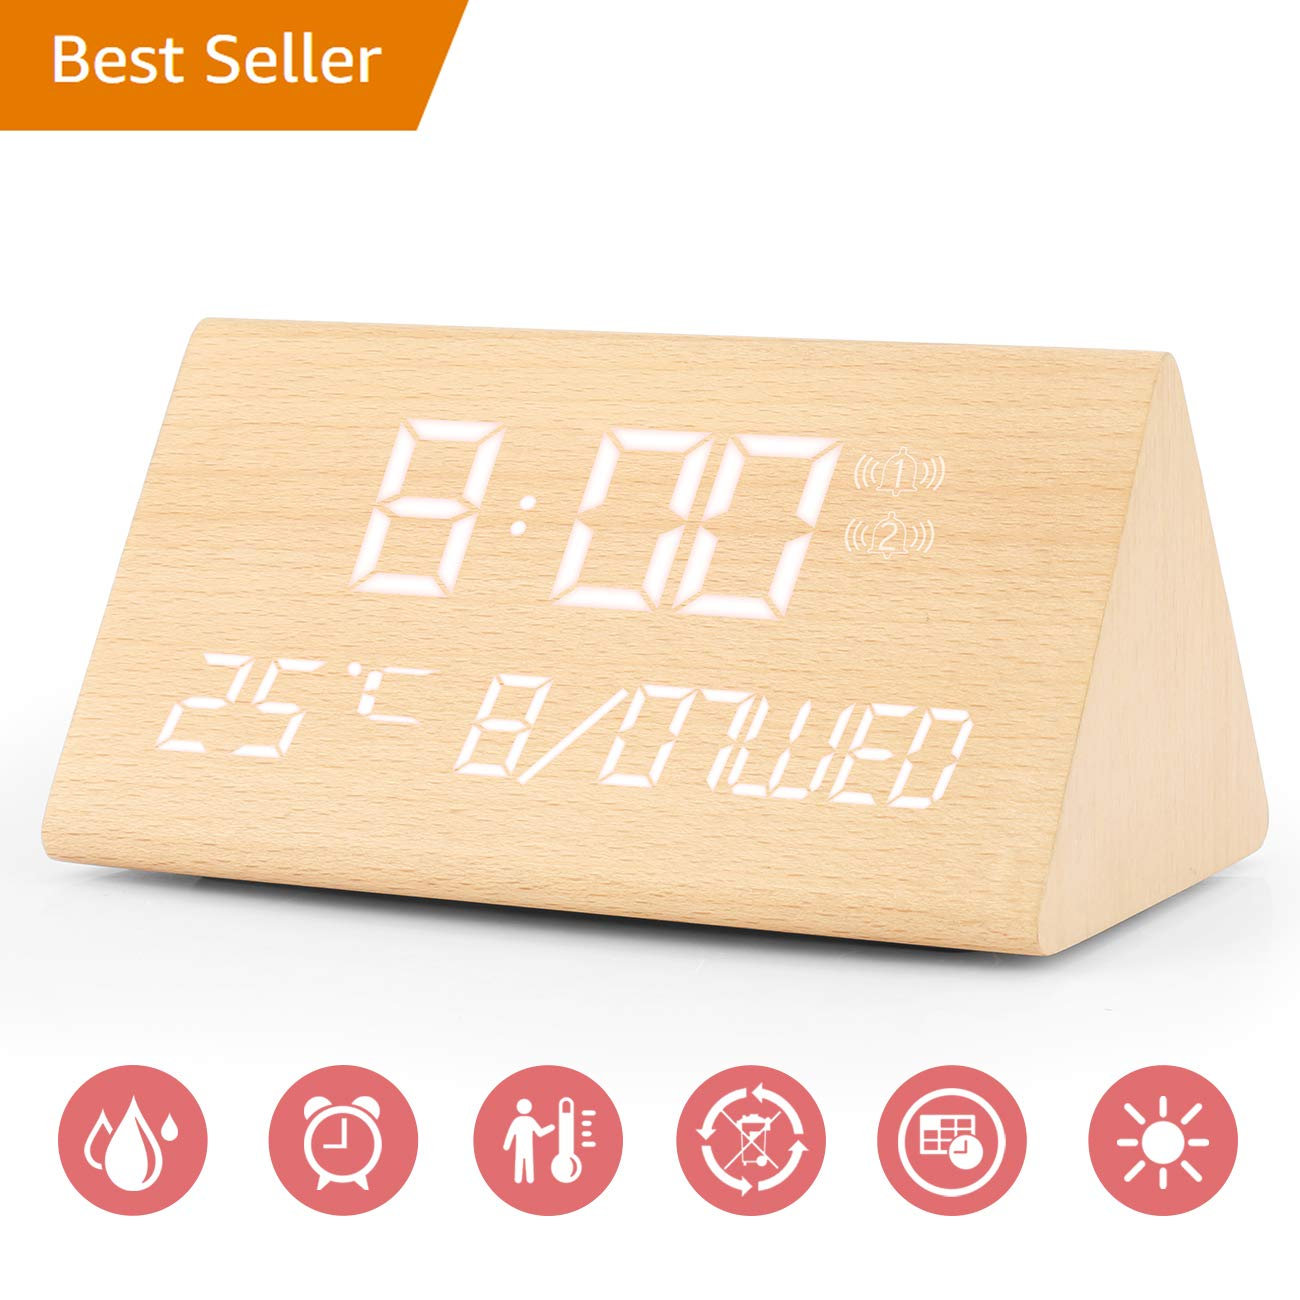 Digital Alarm Clock, Adjustable Brightness Voice Control Desk Wooden Alarm Clock, Large Display Time Temperature USB/Battery Powered for Home, Office, Kids (Wood)